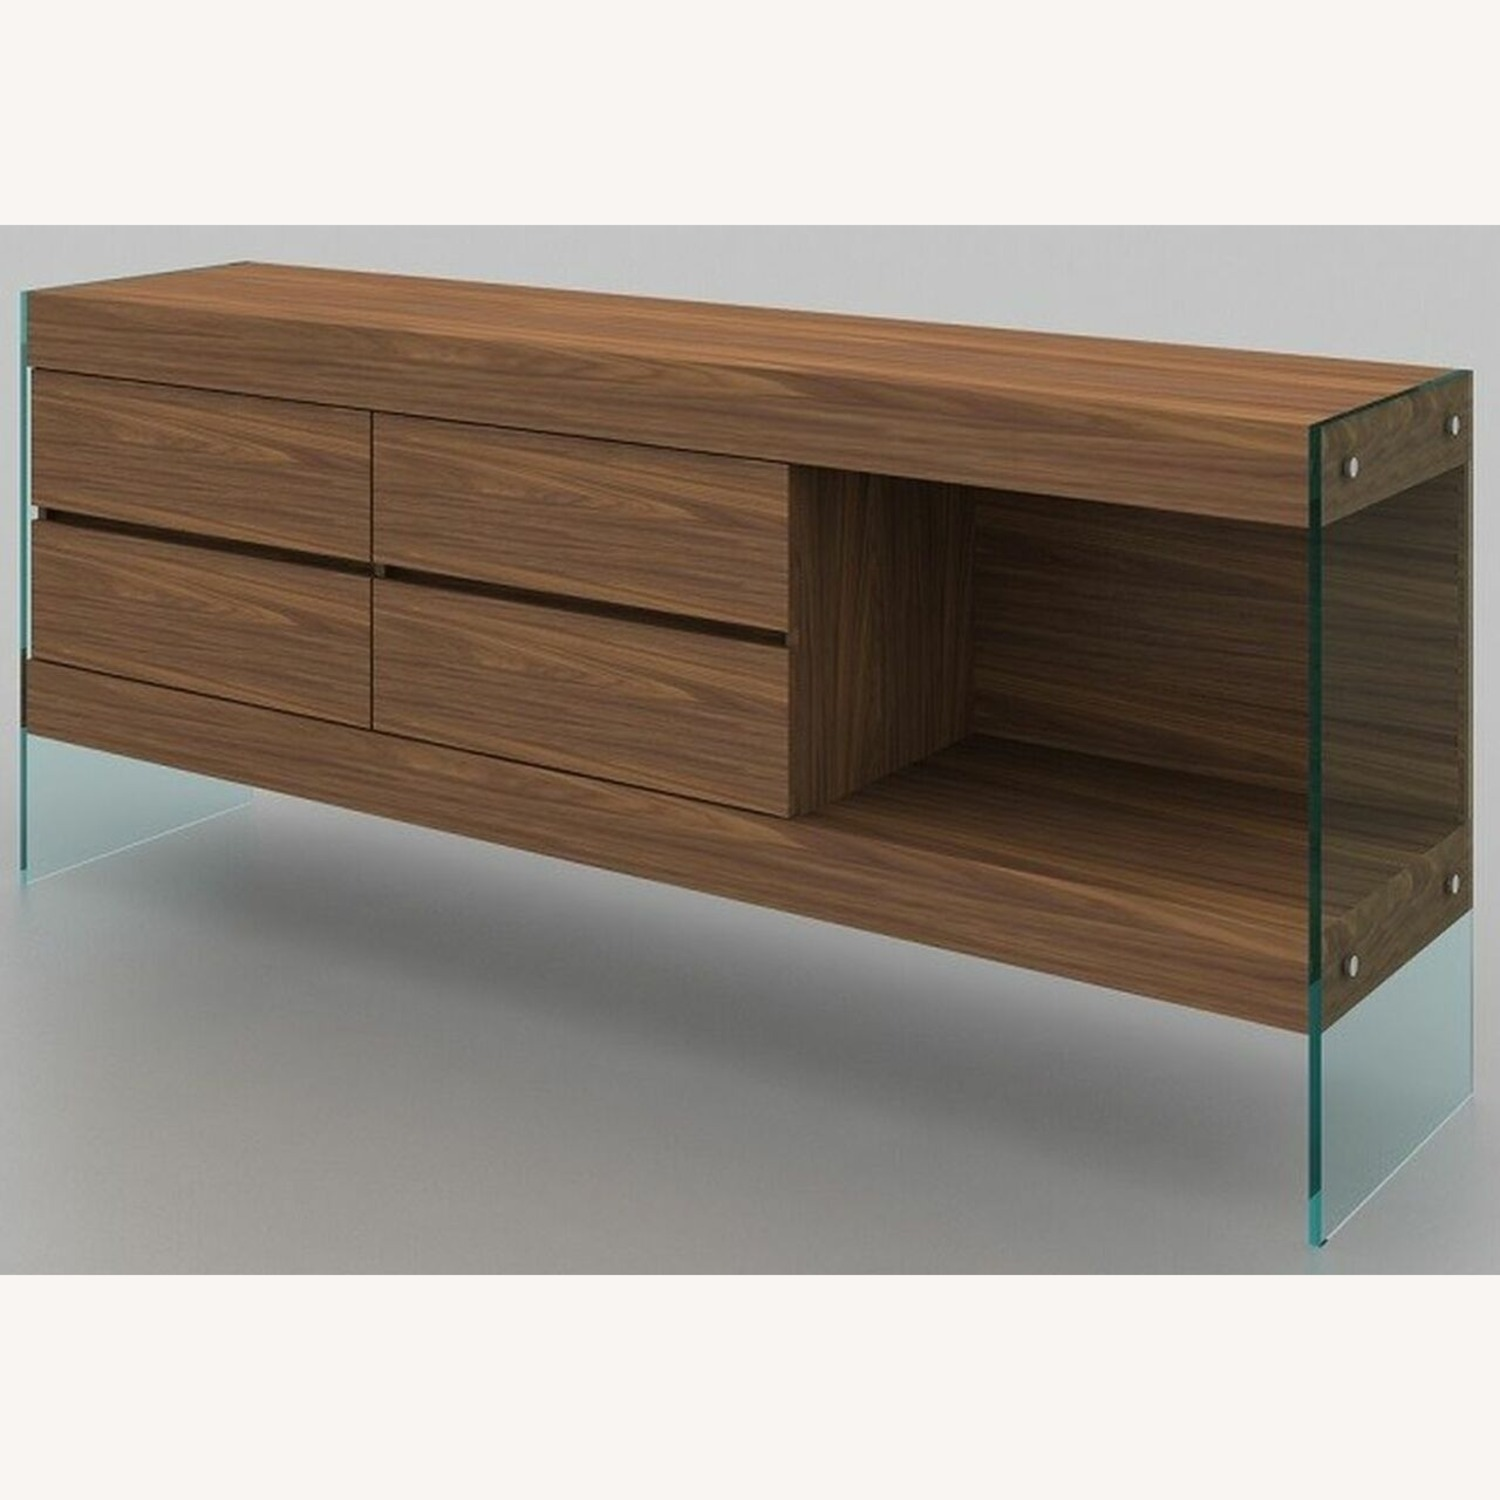 Buffet Crafted In Walnut Matte Finish W/ 4 Drawers - image-0